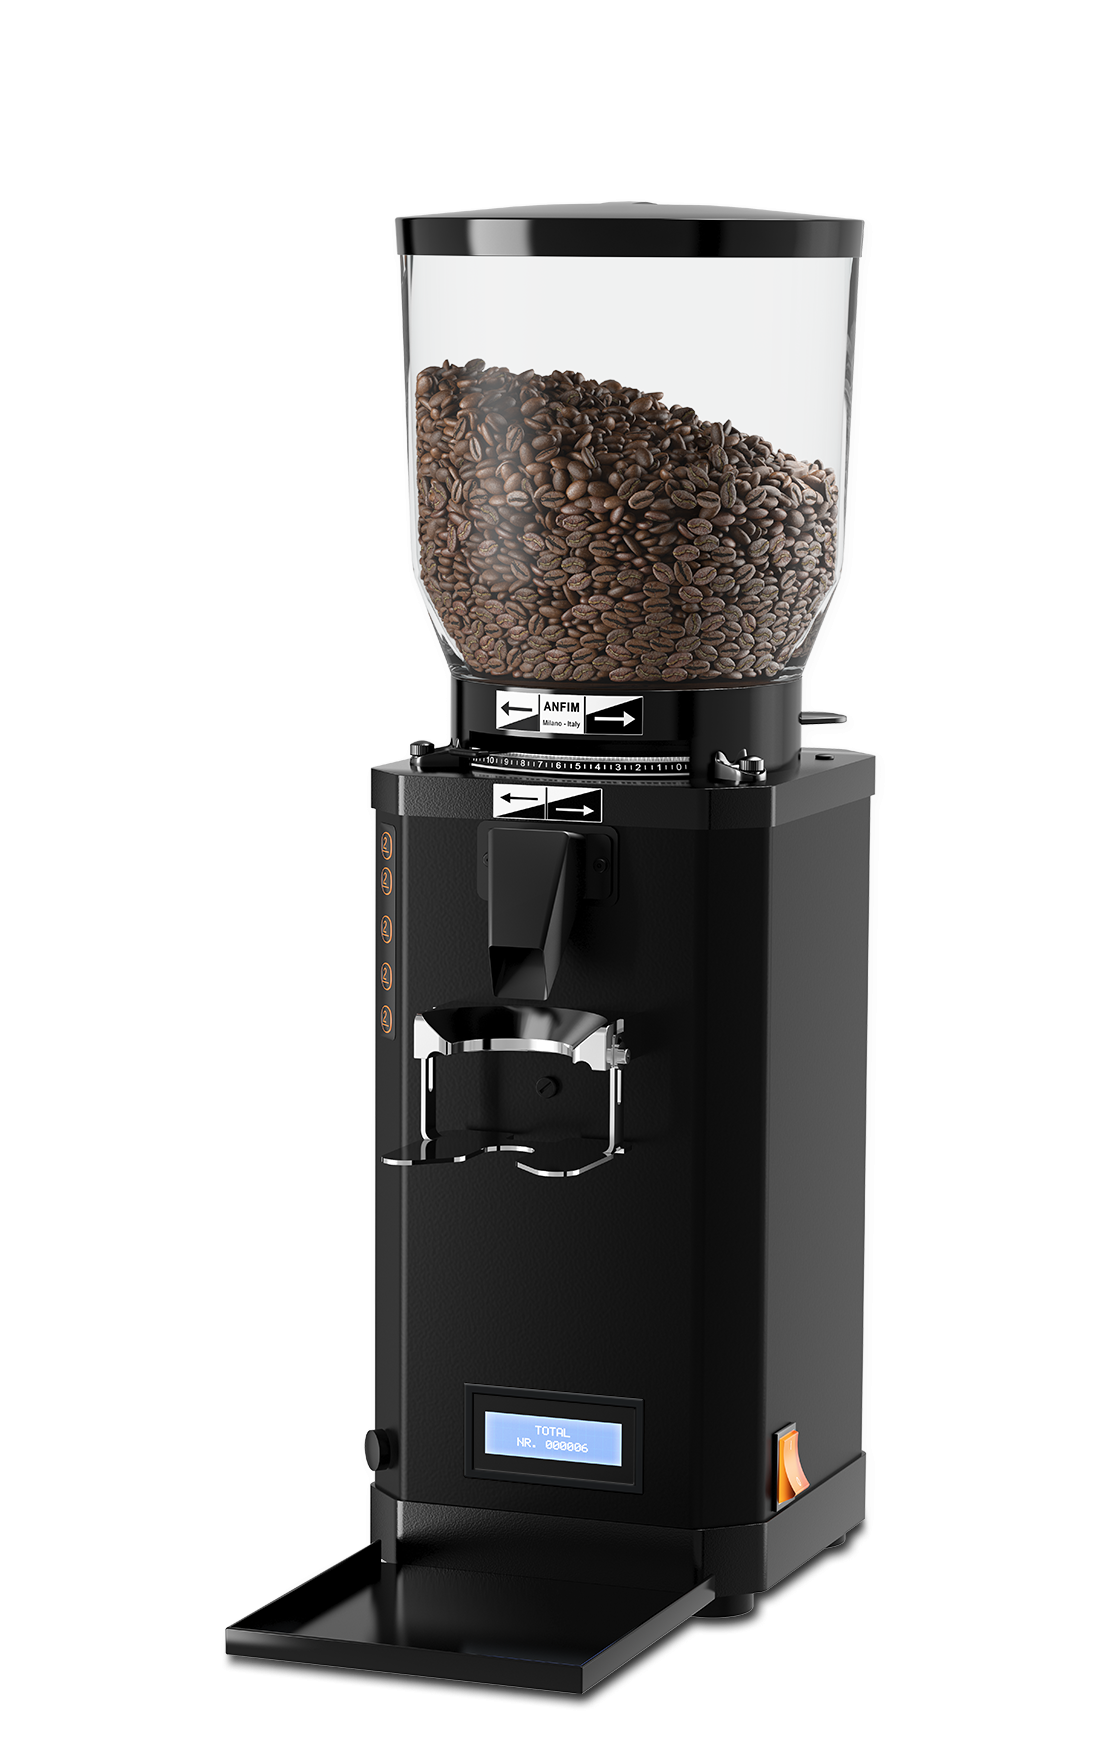 Anfim Caimano On Demand macinacaffe' espresso